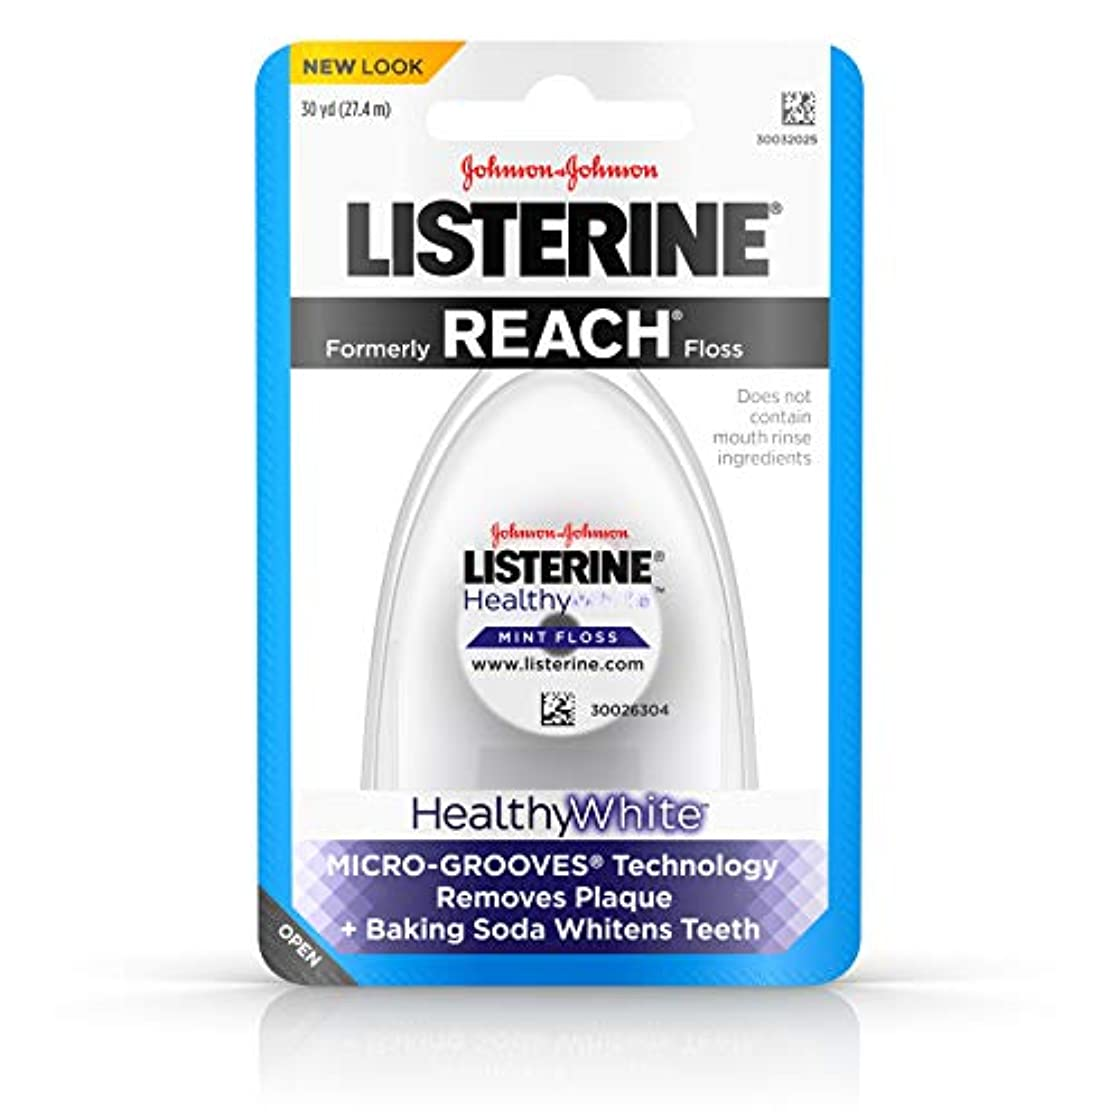 Listerine Healthy White, Interdental Floss with Baking Soda, Oral Care and Hygiene, Mint, 30 Yards